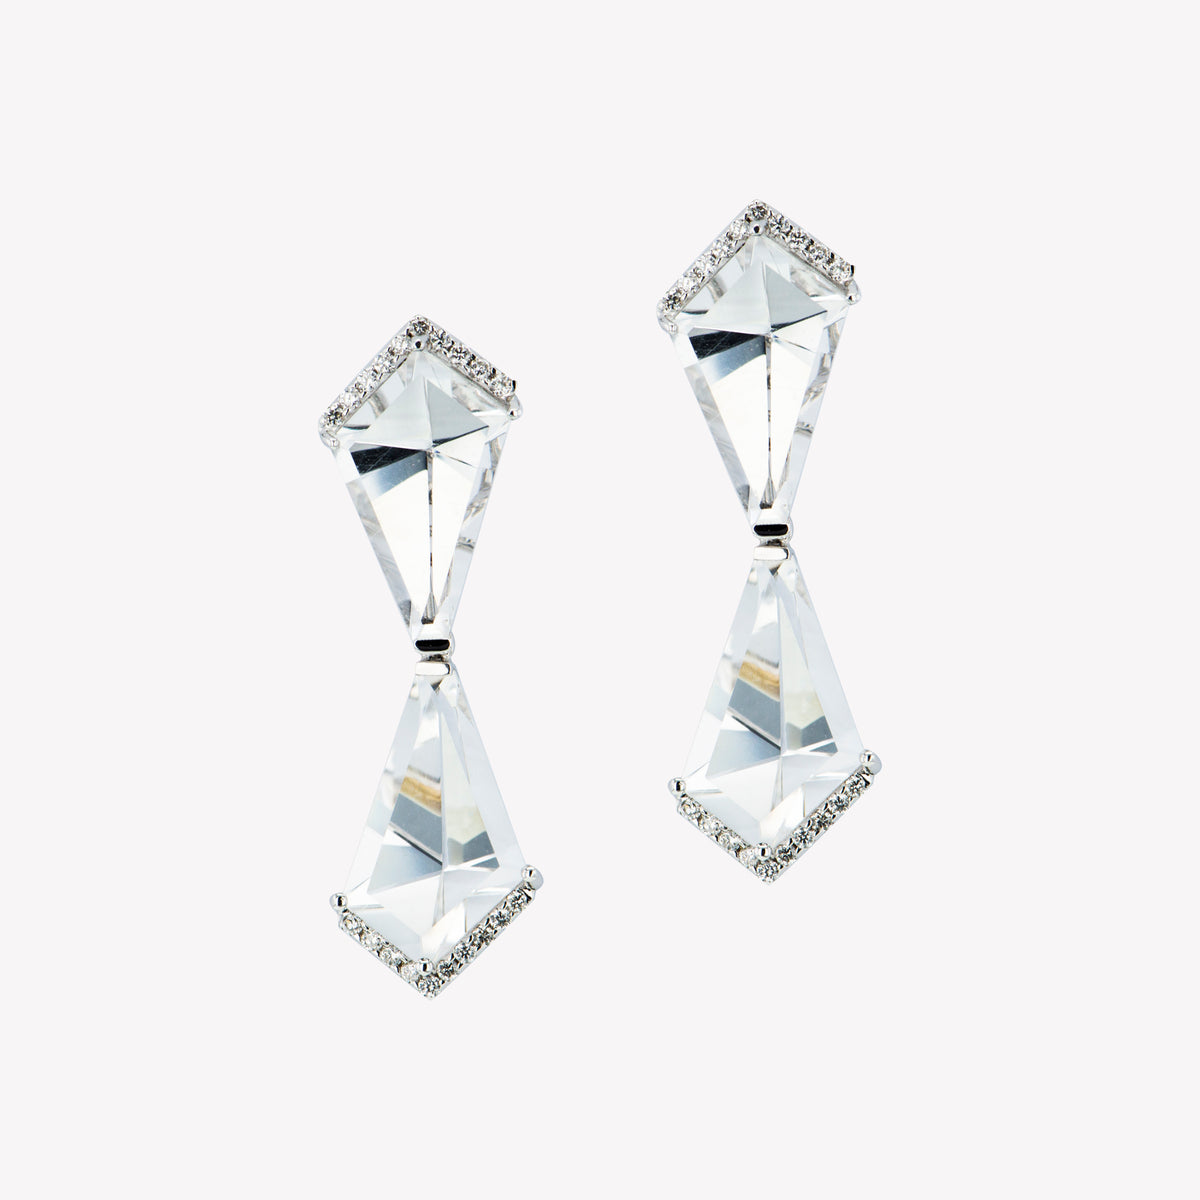 18K W/G White Quartz Diamond Earrings